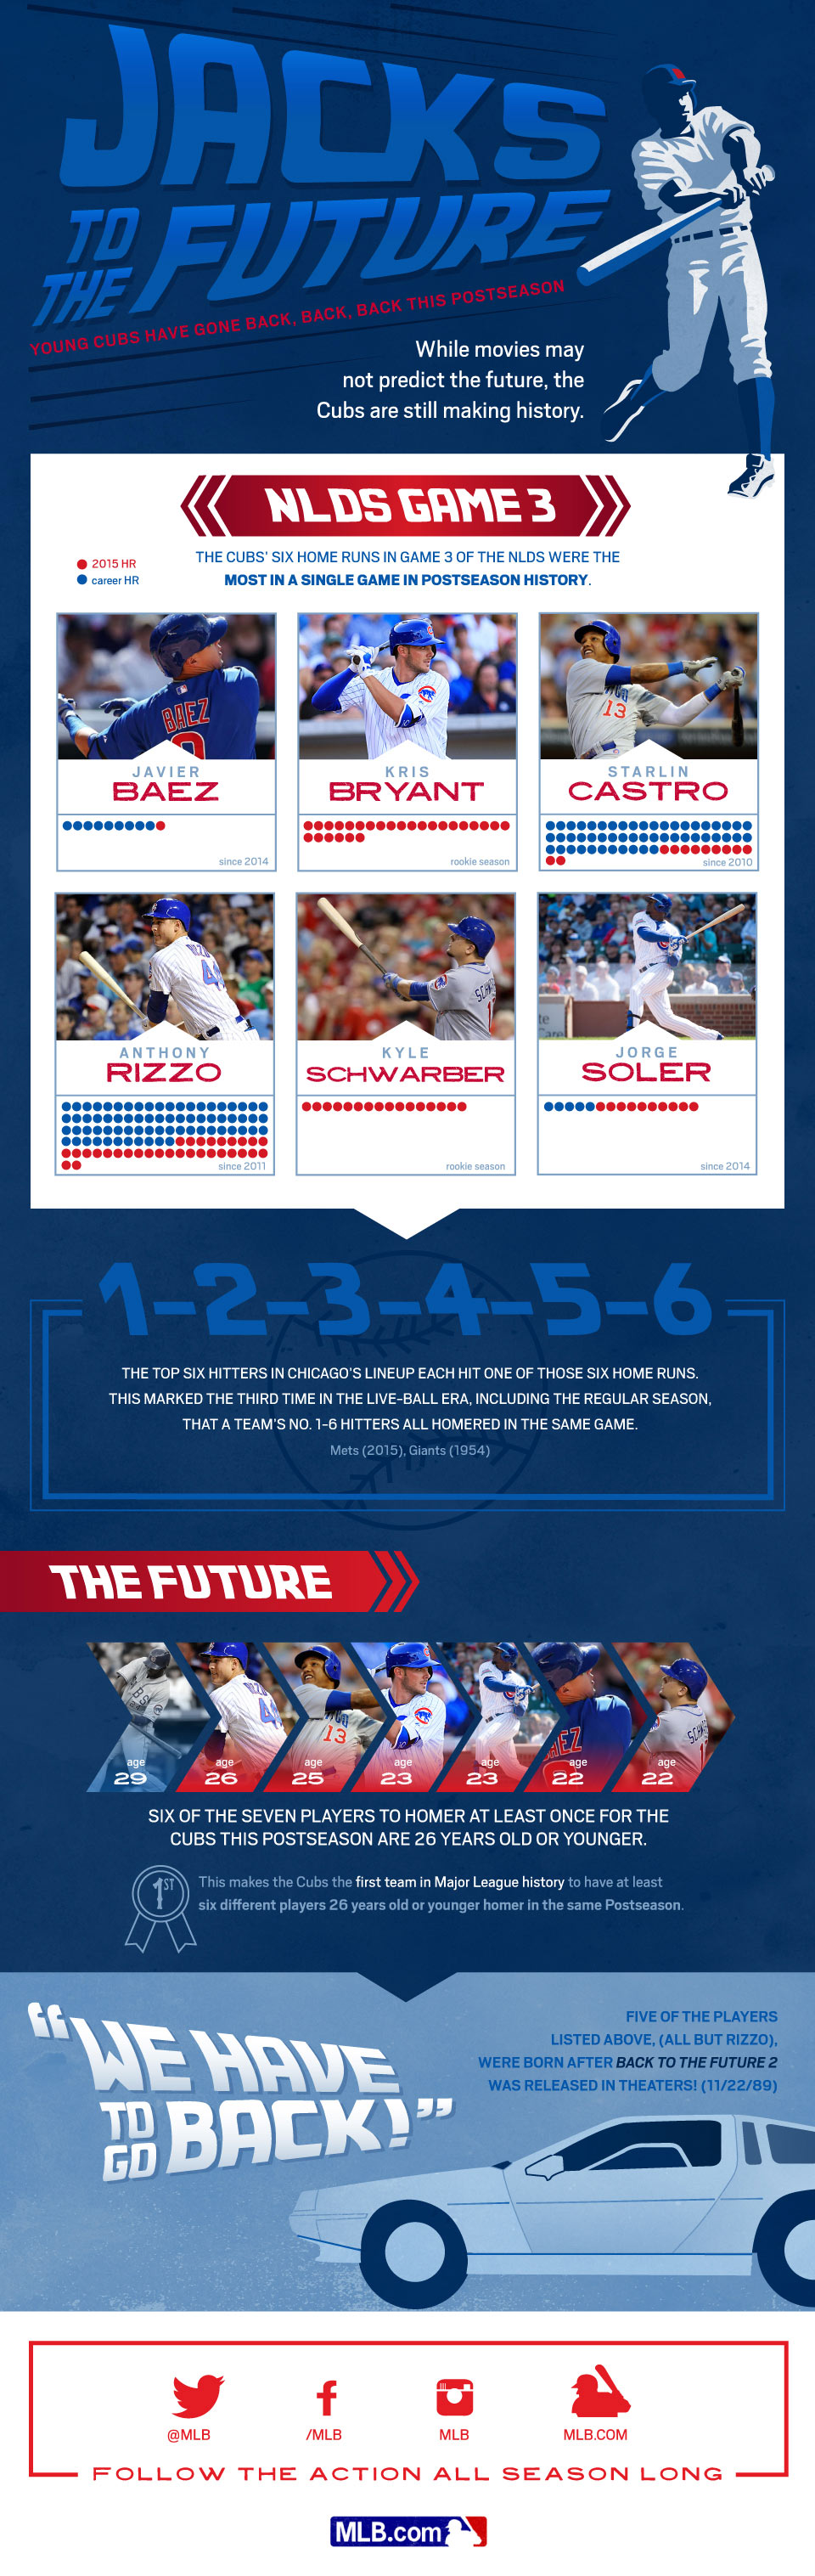 [INFOGRAPHIC] Jacks to the Future: Young Cubs have gone back, back, back this Postseason